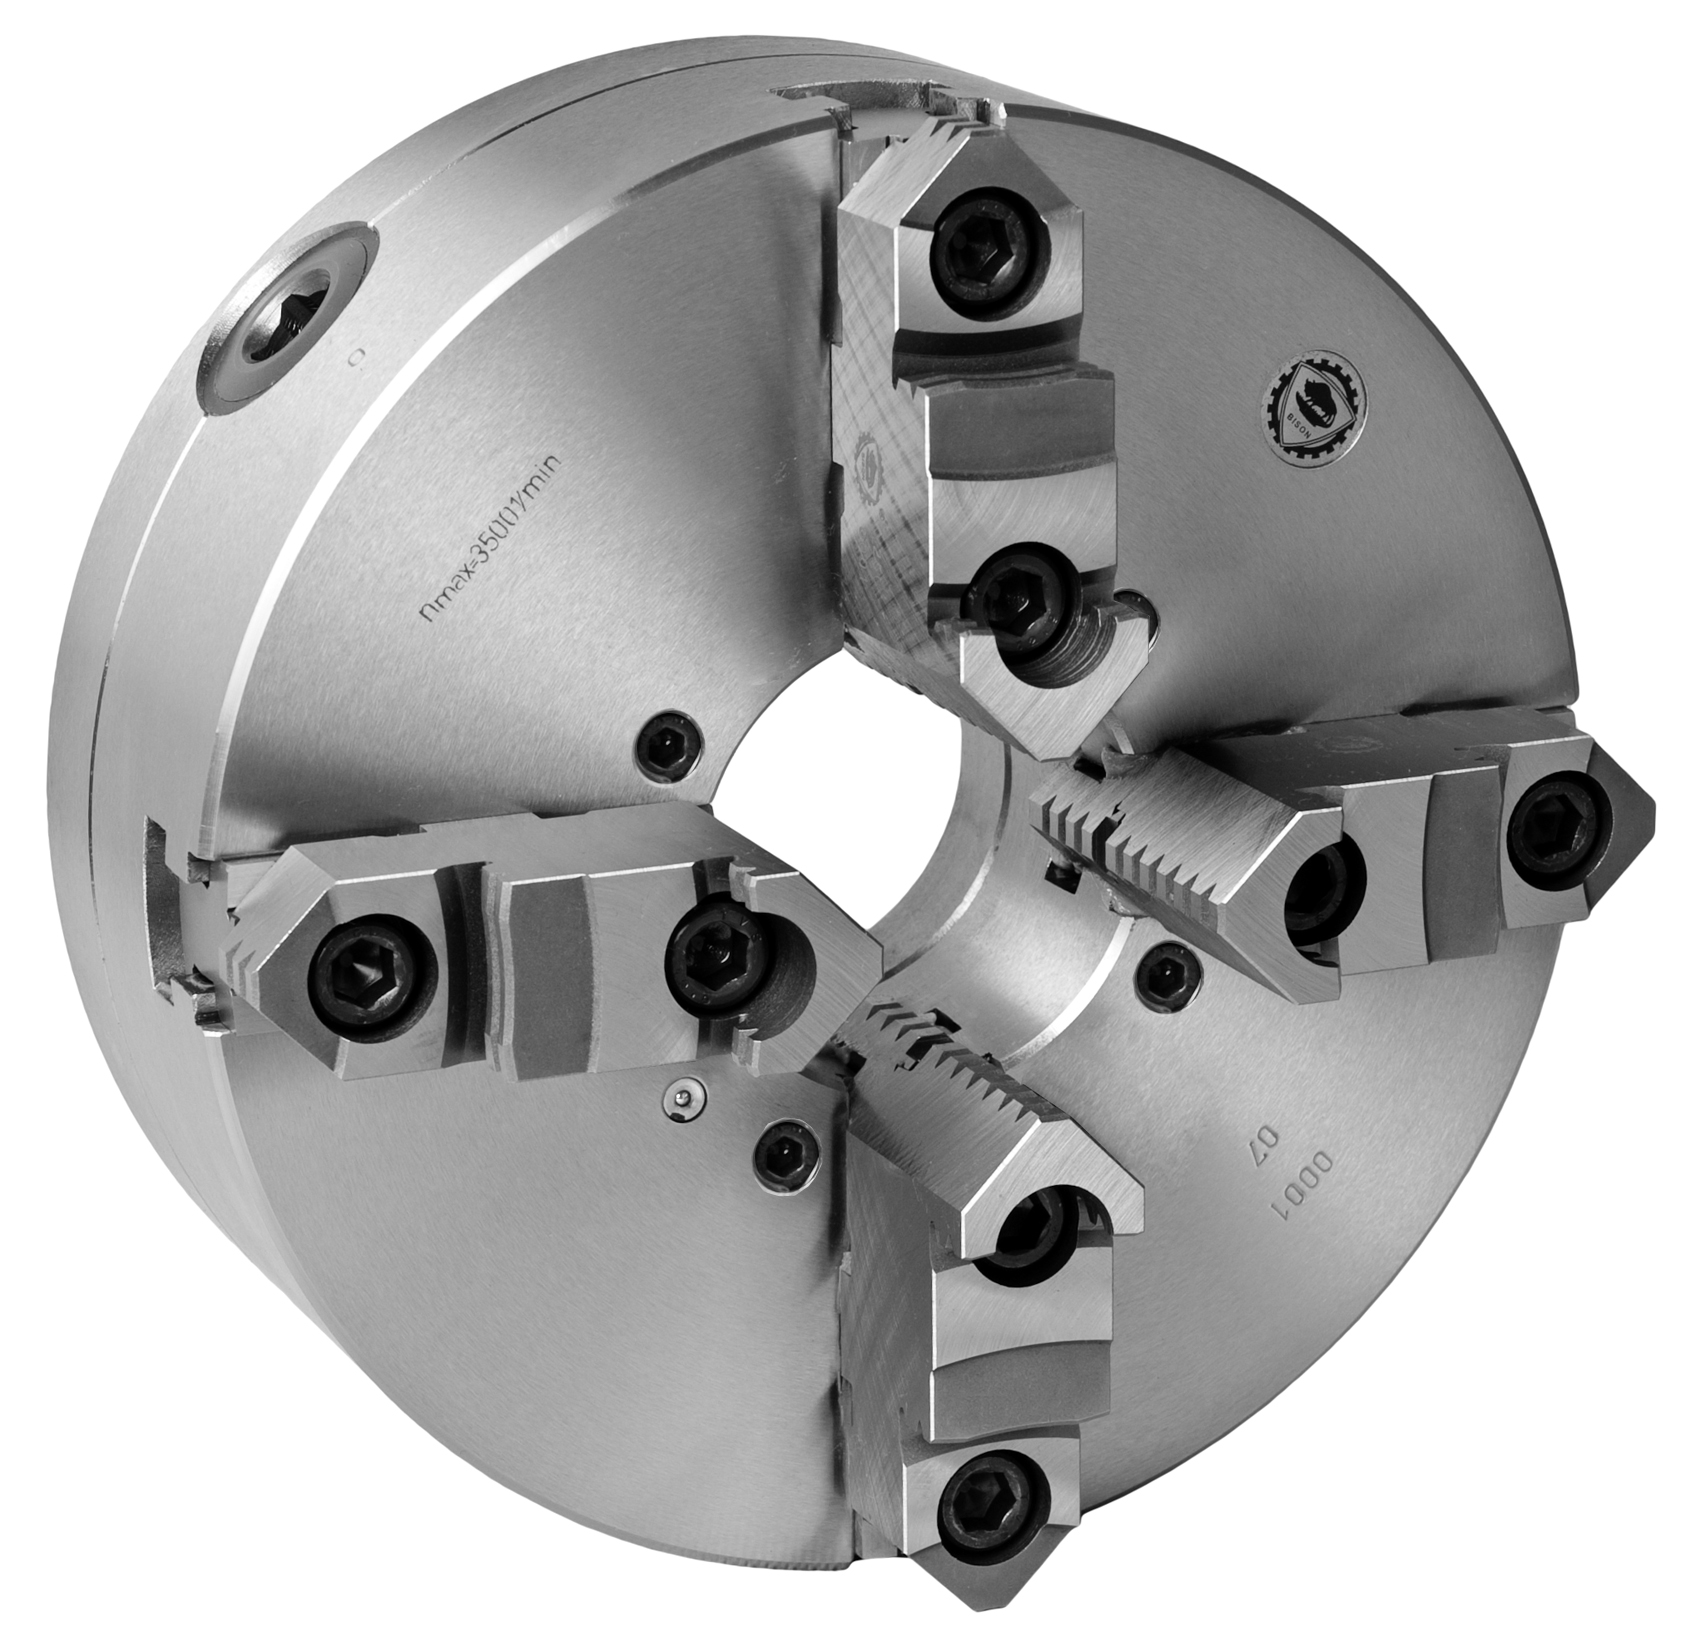 Bison 3735 4-Jaw Steel Self-Centring Scroll Chuck with Bayonet (Type C) Mounting - DIN 55027.